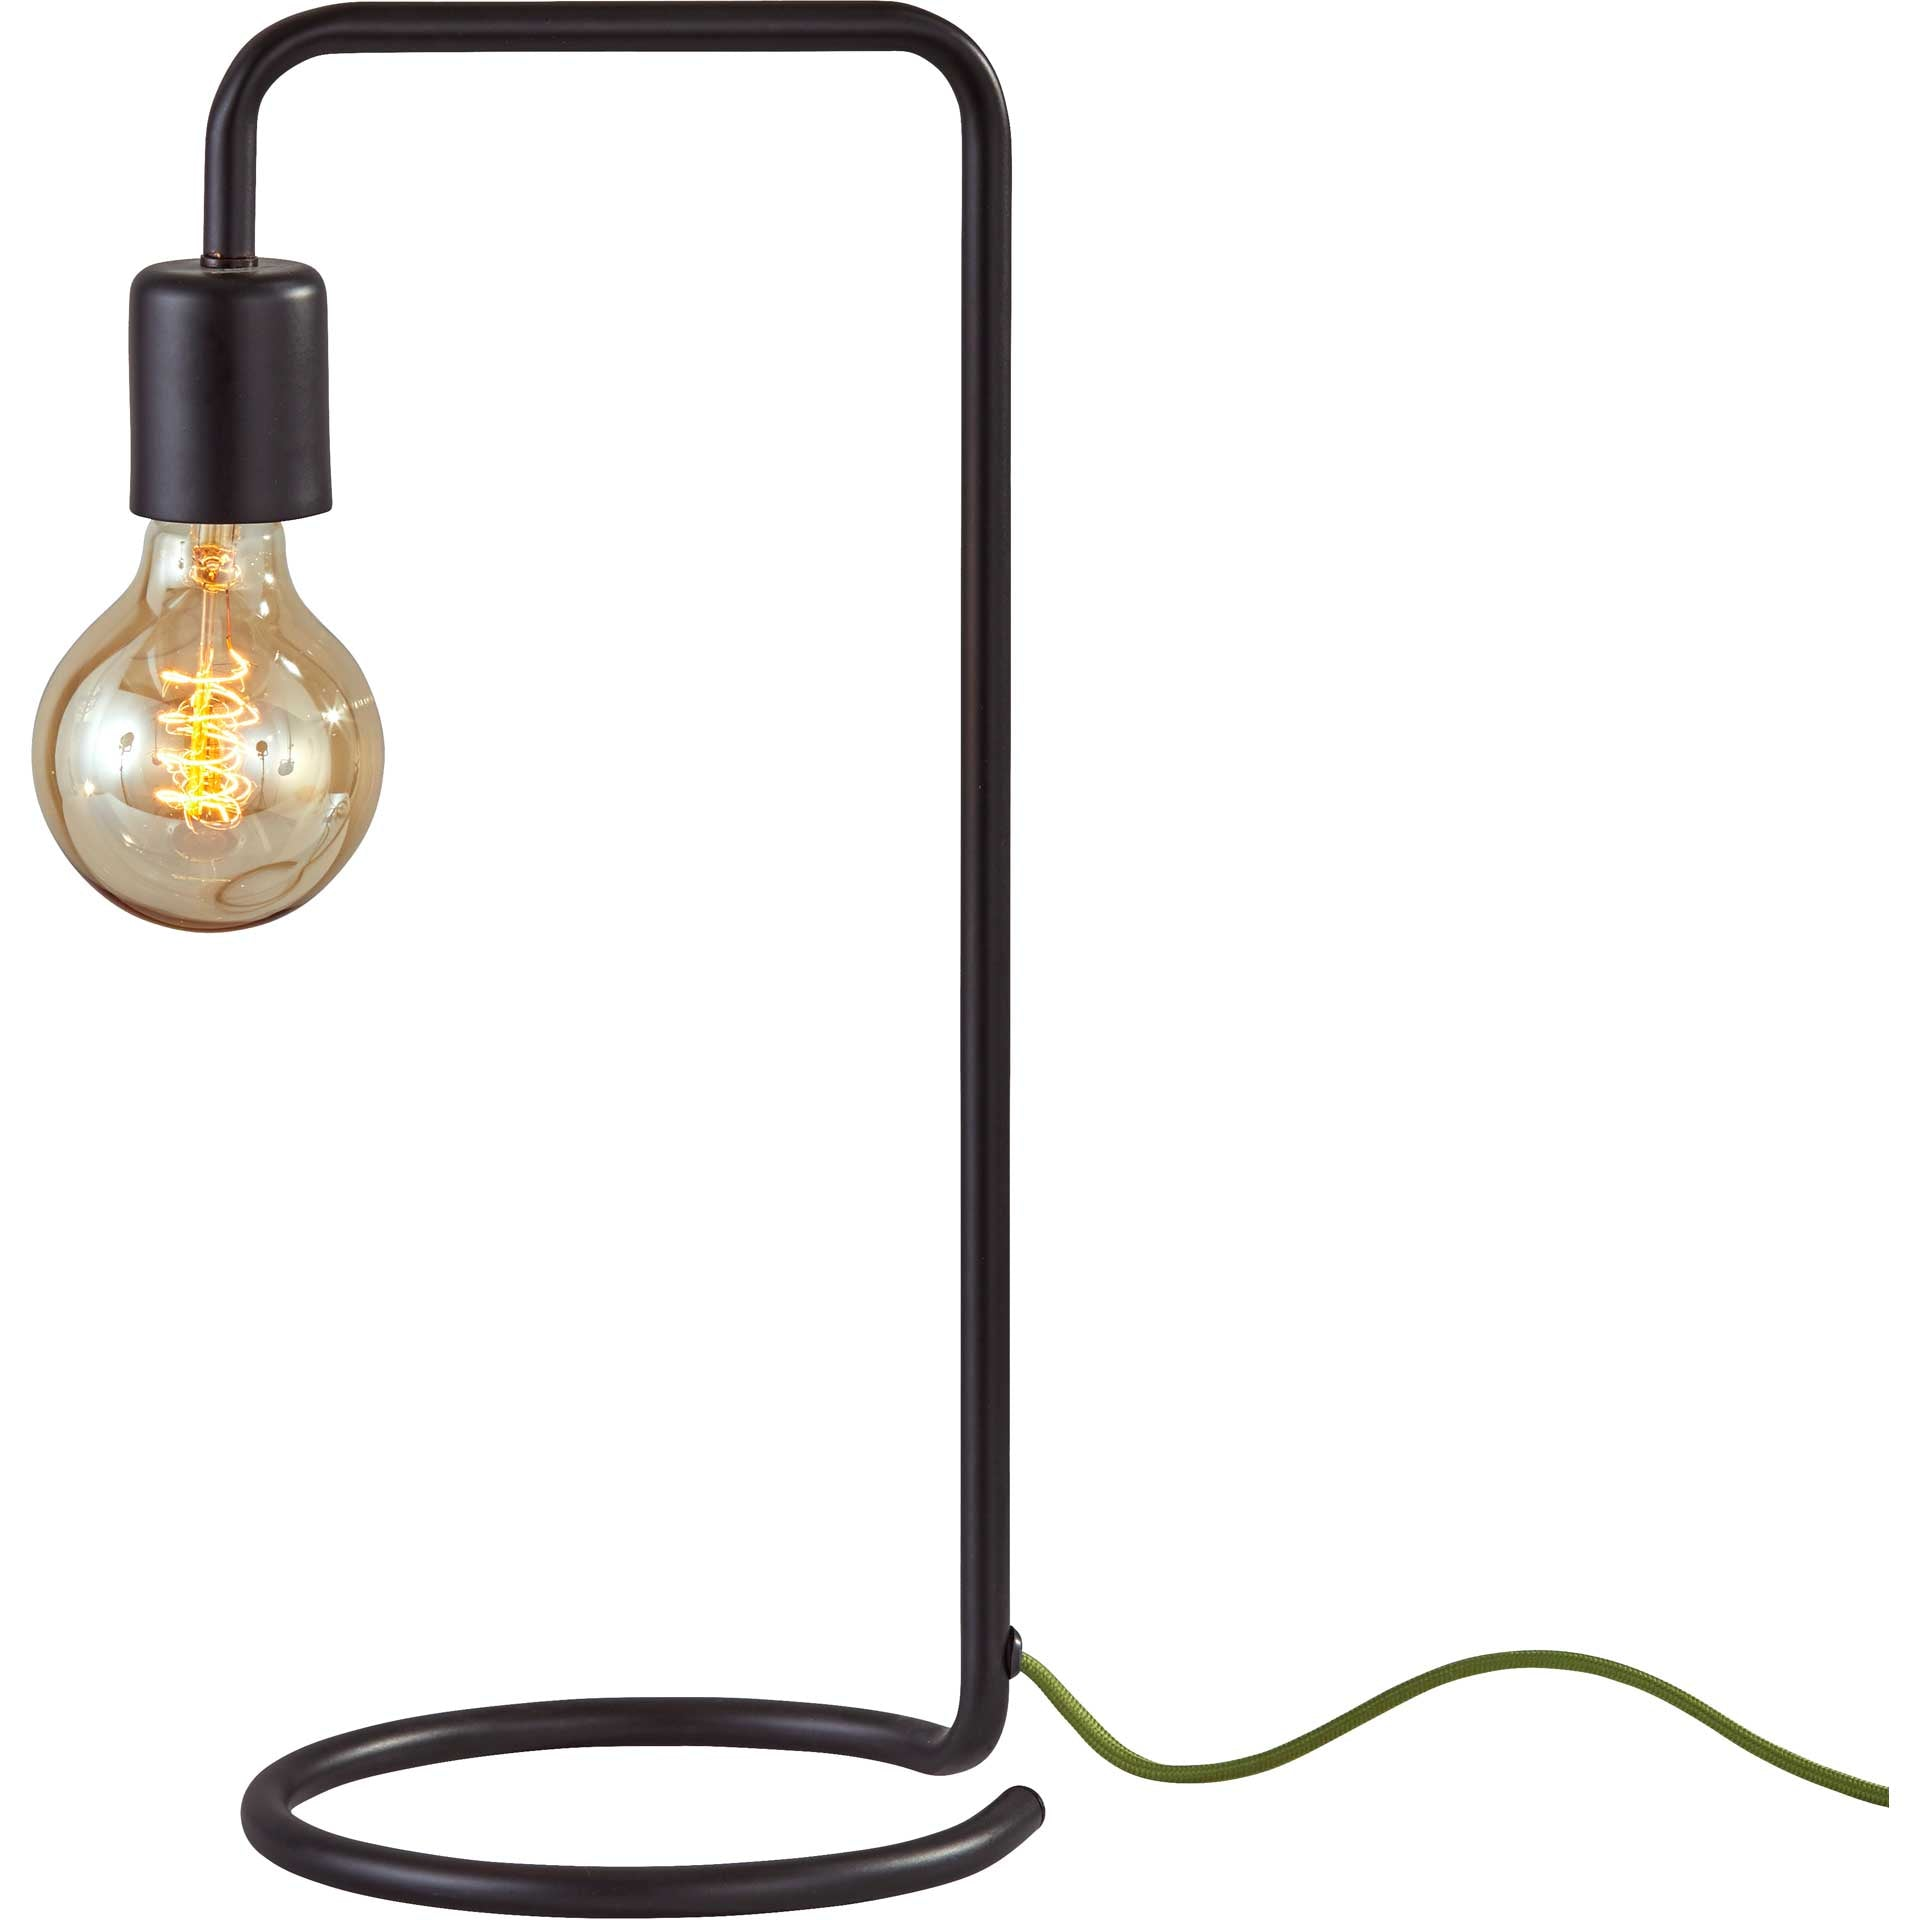 Montgeron Desk Lamp Matte Black